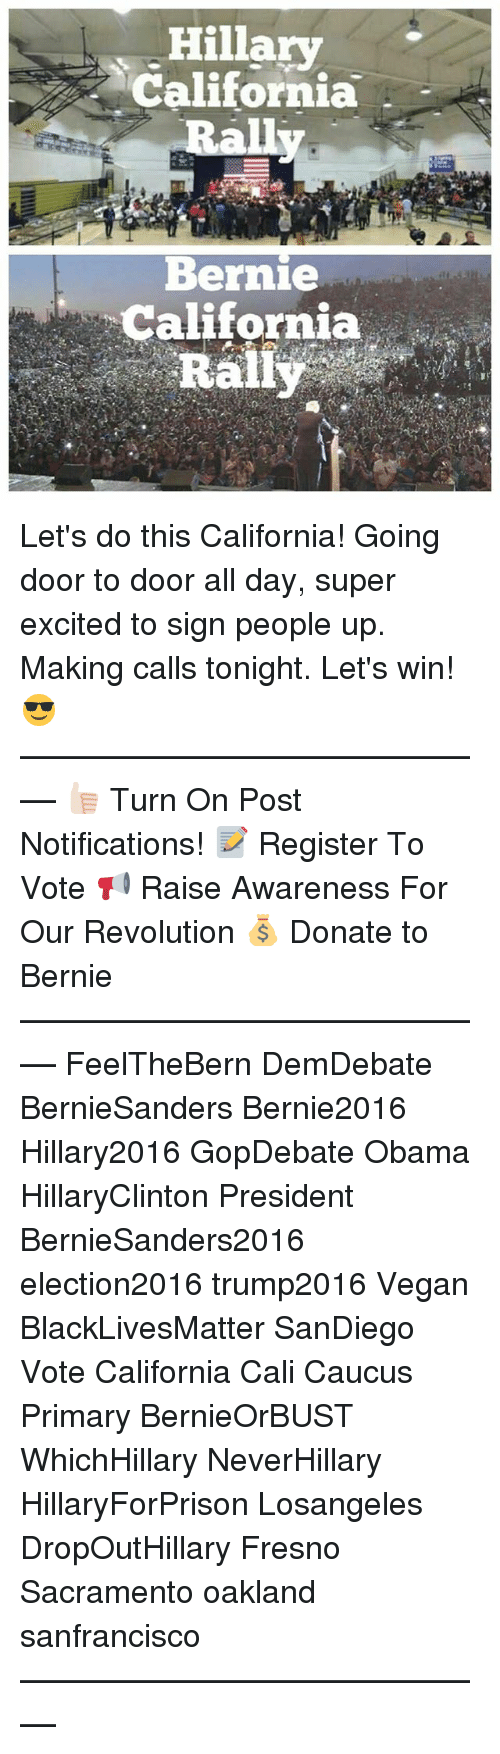 caucuses: Hillary  California  Bernie  California  Rally Let's do this California! Going door to door all day, super excited to sign people up. Making calls tonight. Let's win! 😎 ––––––––––––––––––––––––––– 👍🏻 Turn On Post Notifications! 📝 Register To Vote 📢 Raise Awareness For Our Revolution 💰 Donate to Bernie ––––––––––––––––––––––––––– FeelTheBern DemDebate BernieSanders Bernie2016 Hillary2016 GopDebate Obama HillaryClinton President BernieSanders2016 election2016 trump2016 Vegan BlackLivesMatter SanDiego Vote California Cali Caucus Primary BernieOrBUST WhichHillary NeverHillary HillaryForPrison Losangeles DropOutHillary Fresno Sacramento oakland sanfrancisco –––––––––––––––––––––––––––